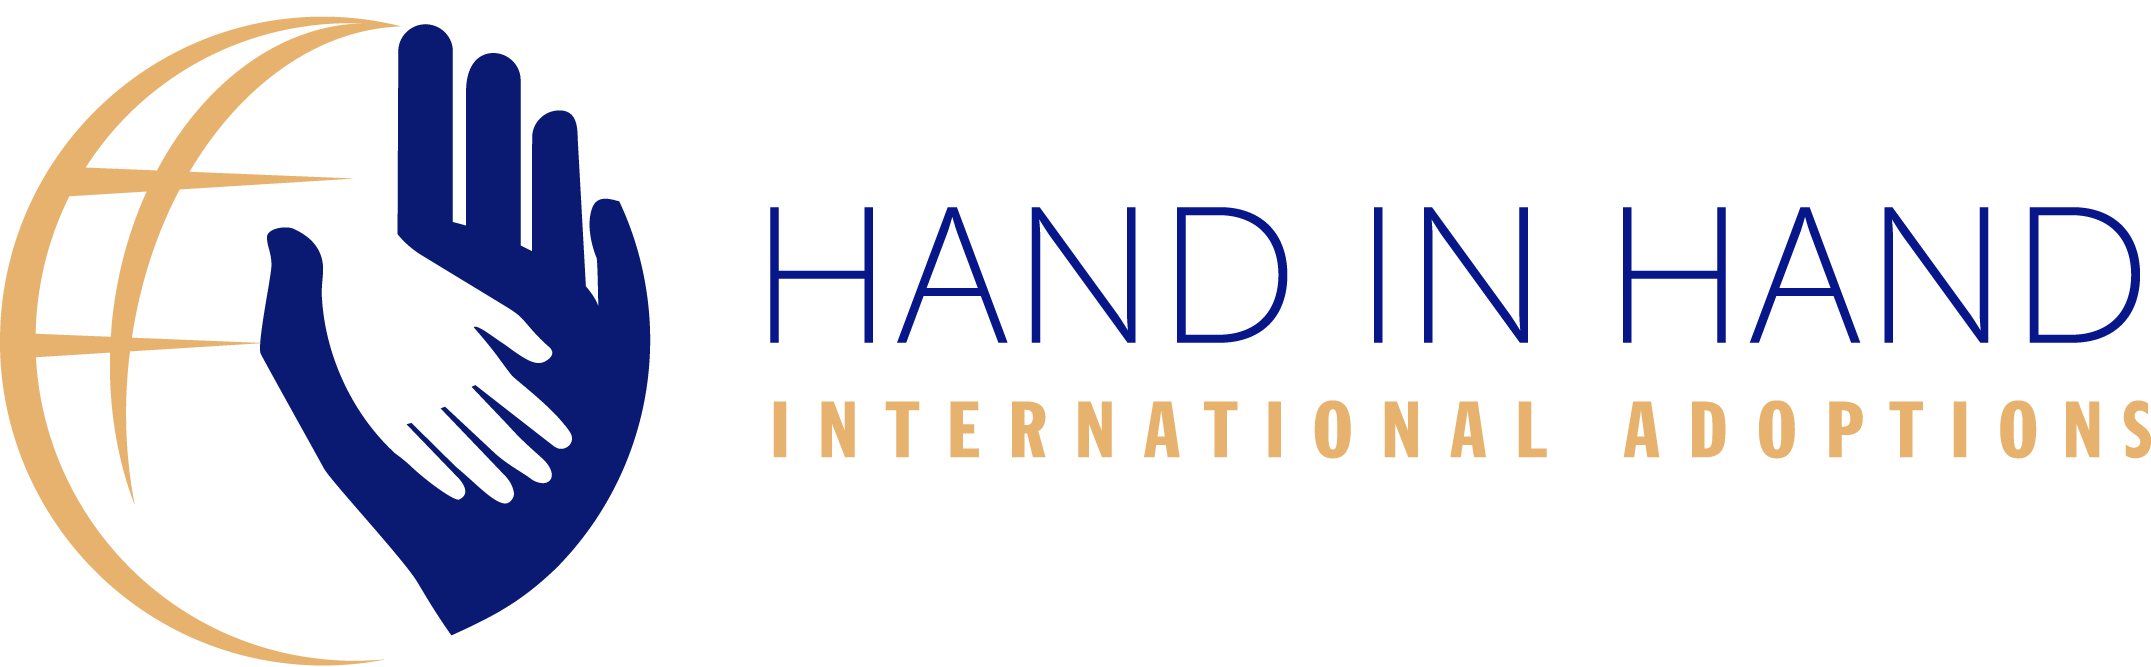 Hand In Hand International Adoptions